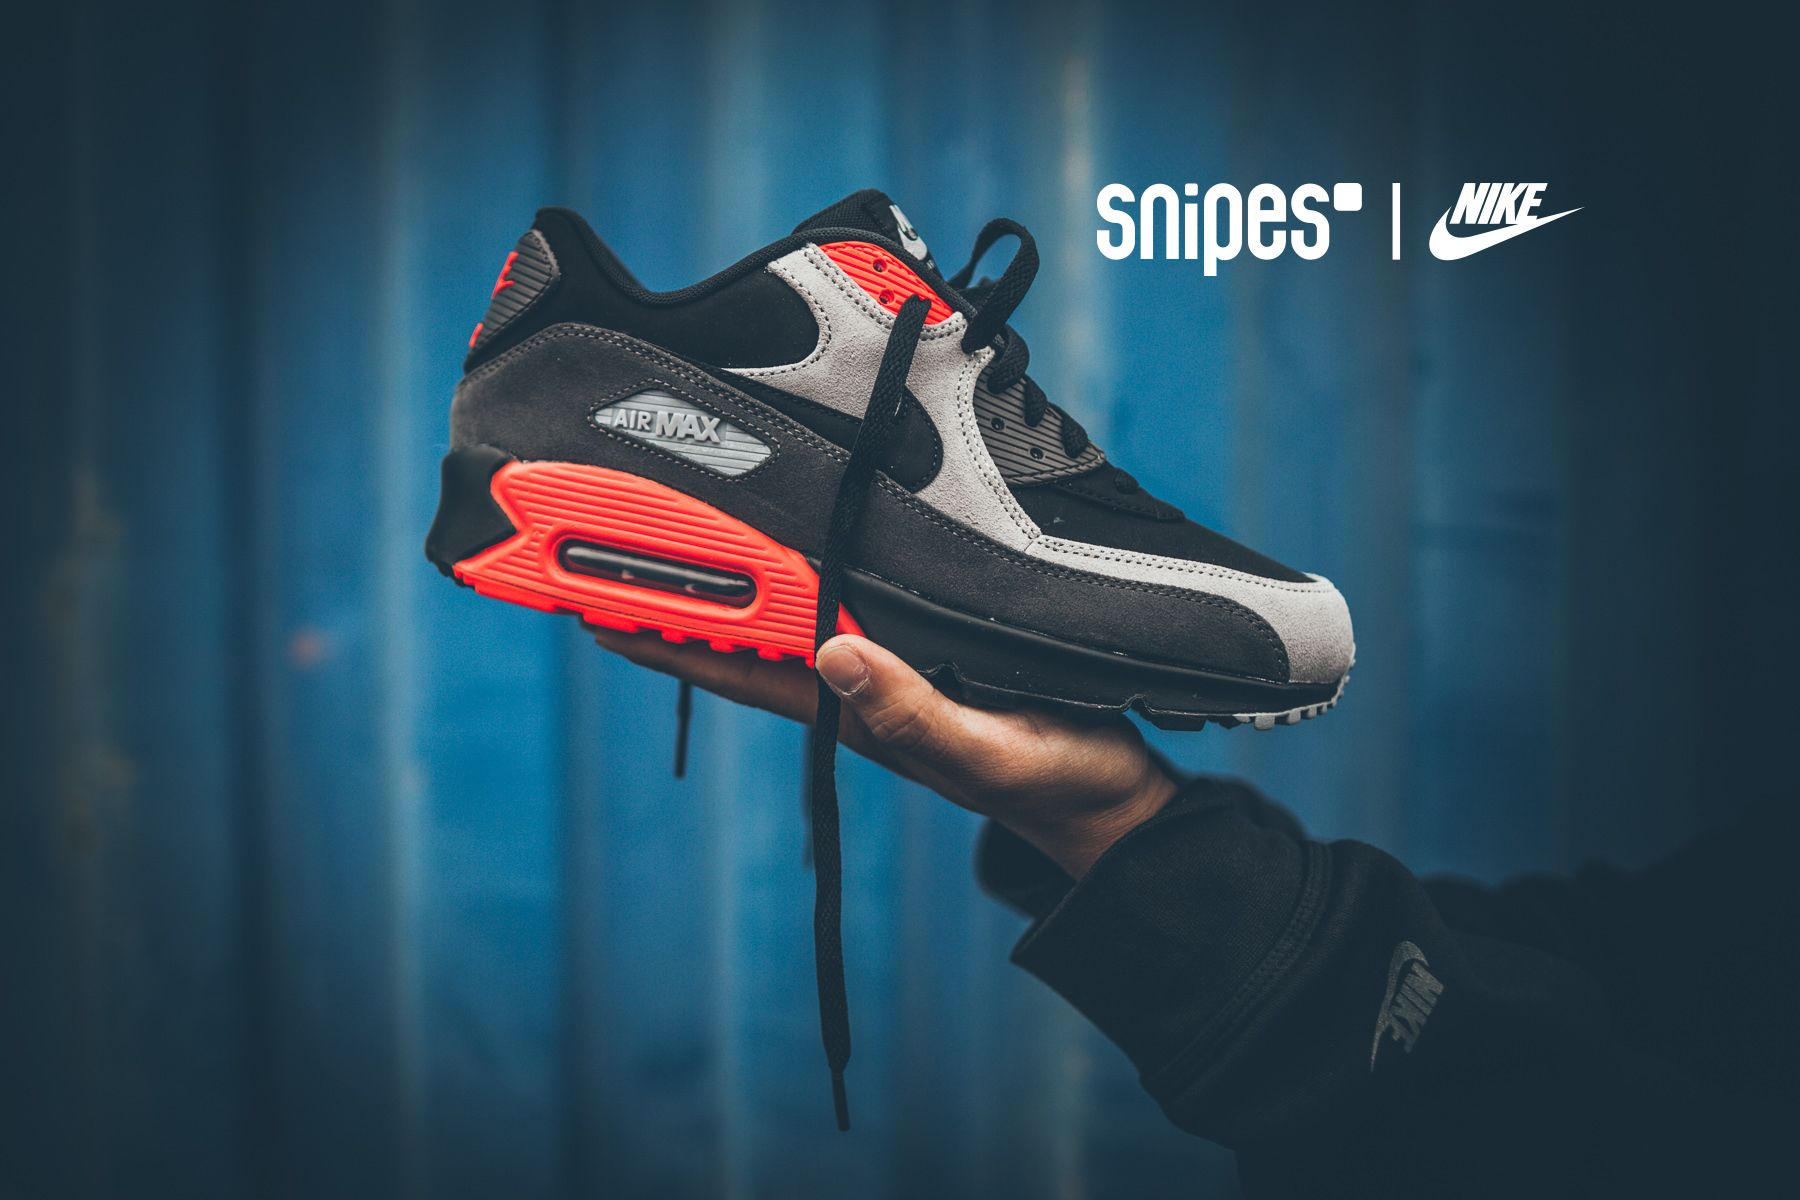 Brandneu im SNIPES Onlineshop! Diesen NIKE Air Max 90